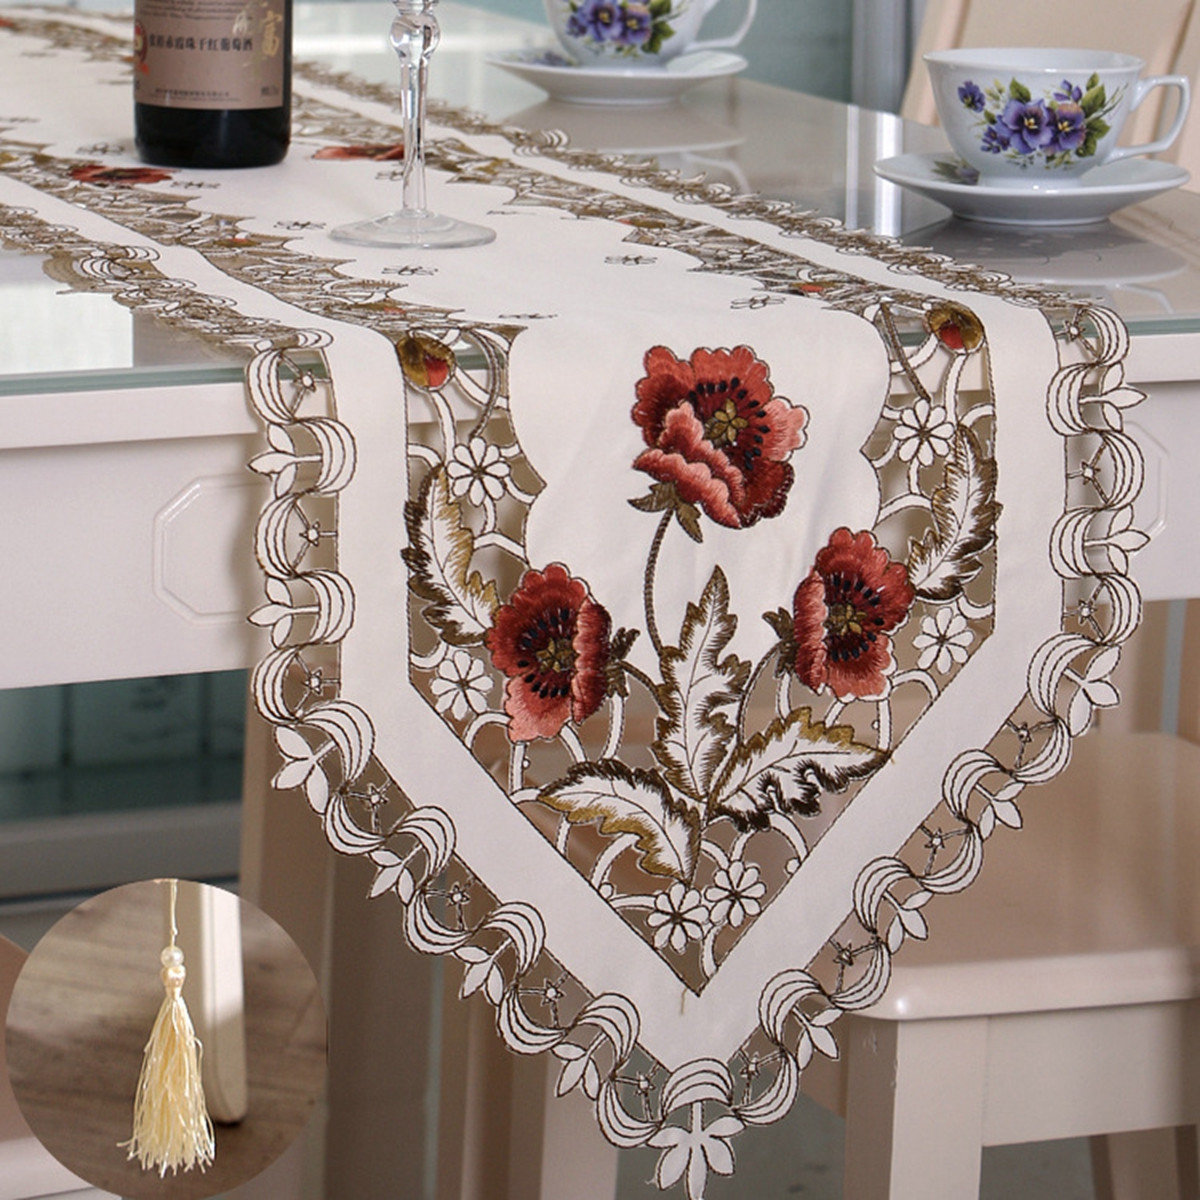 Pastoral Flower Table Runner Tablecloth Flag With Tassel Home Wedding Party Decor COD